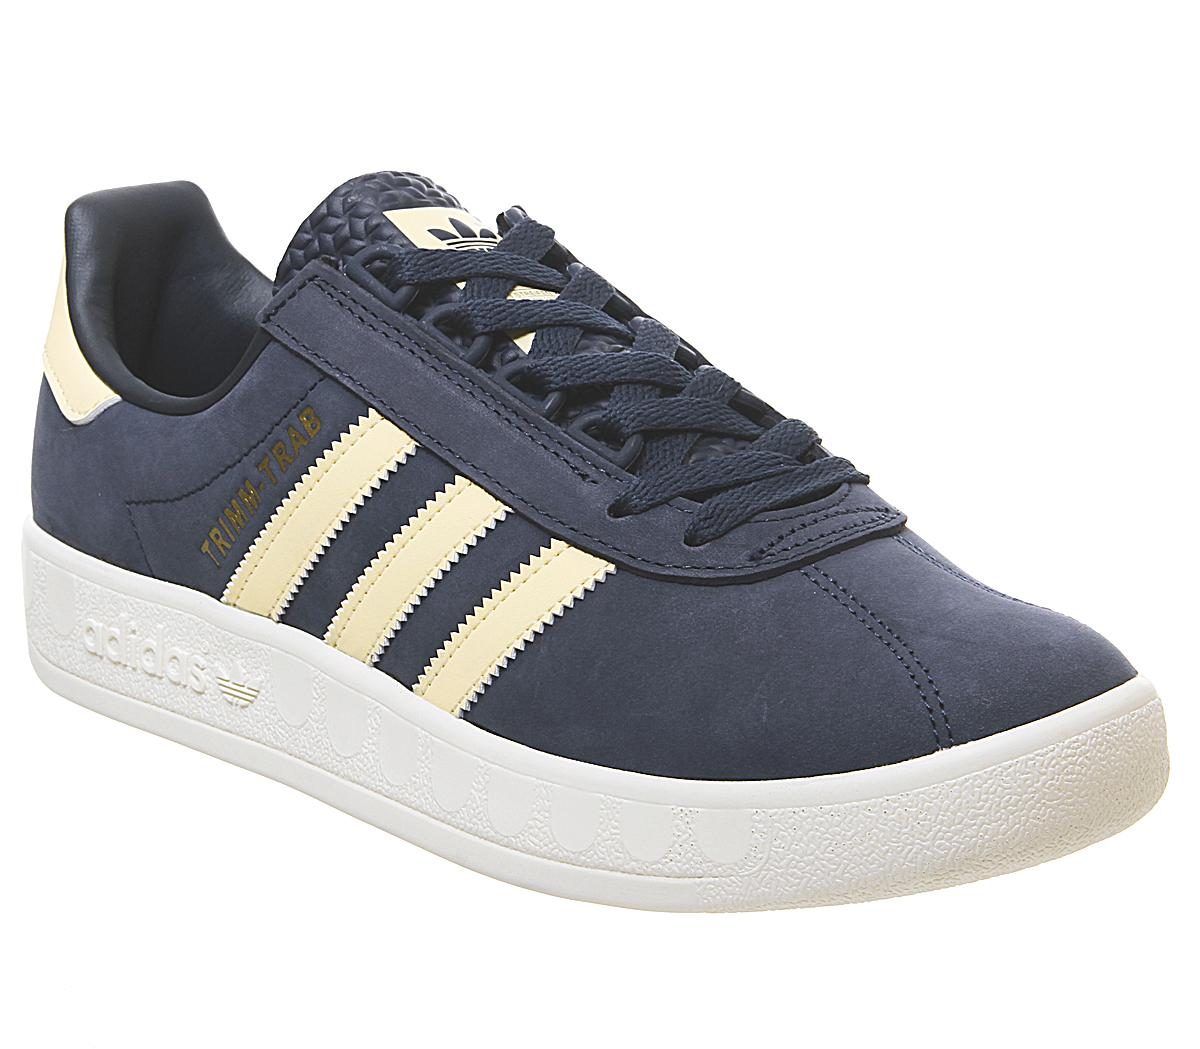 vacunación Compositor peine  adidas Trimm Trab Trainers Collegiate Navy Easy Yellow Cream White - His  trainers